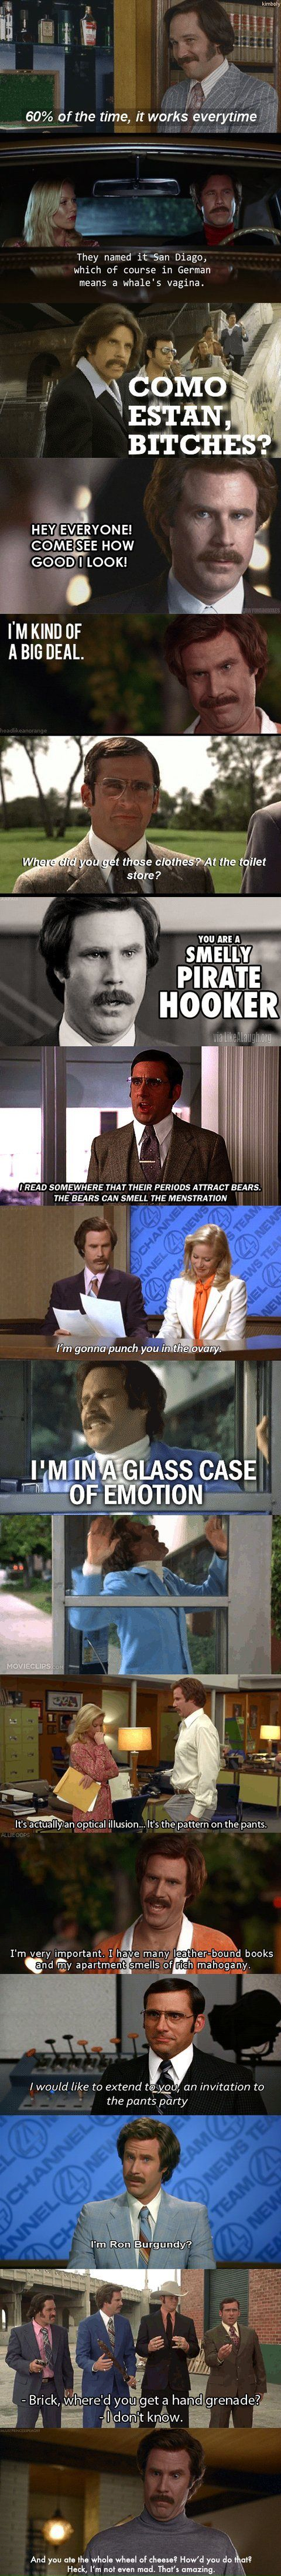 Anchorman too funny!